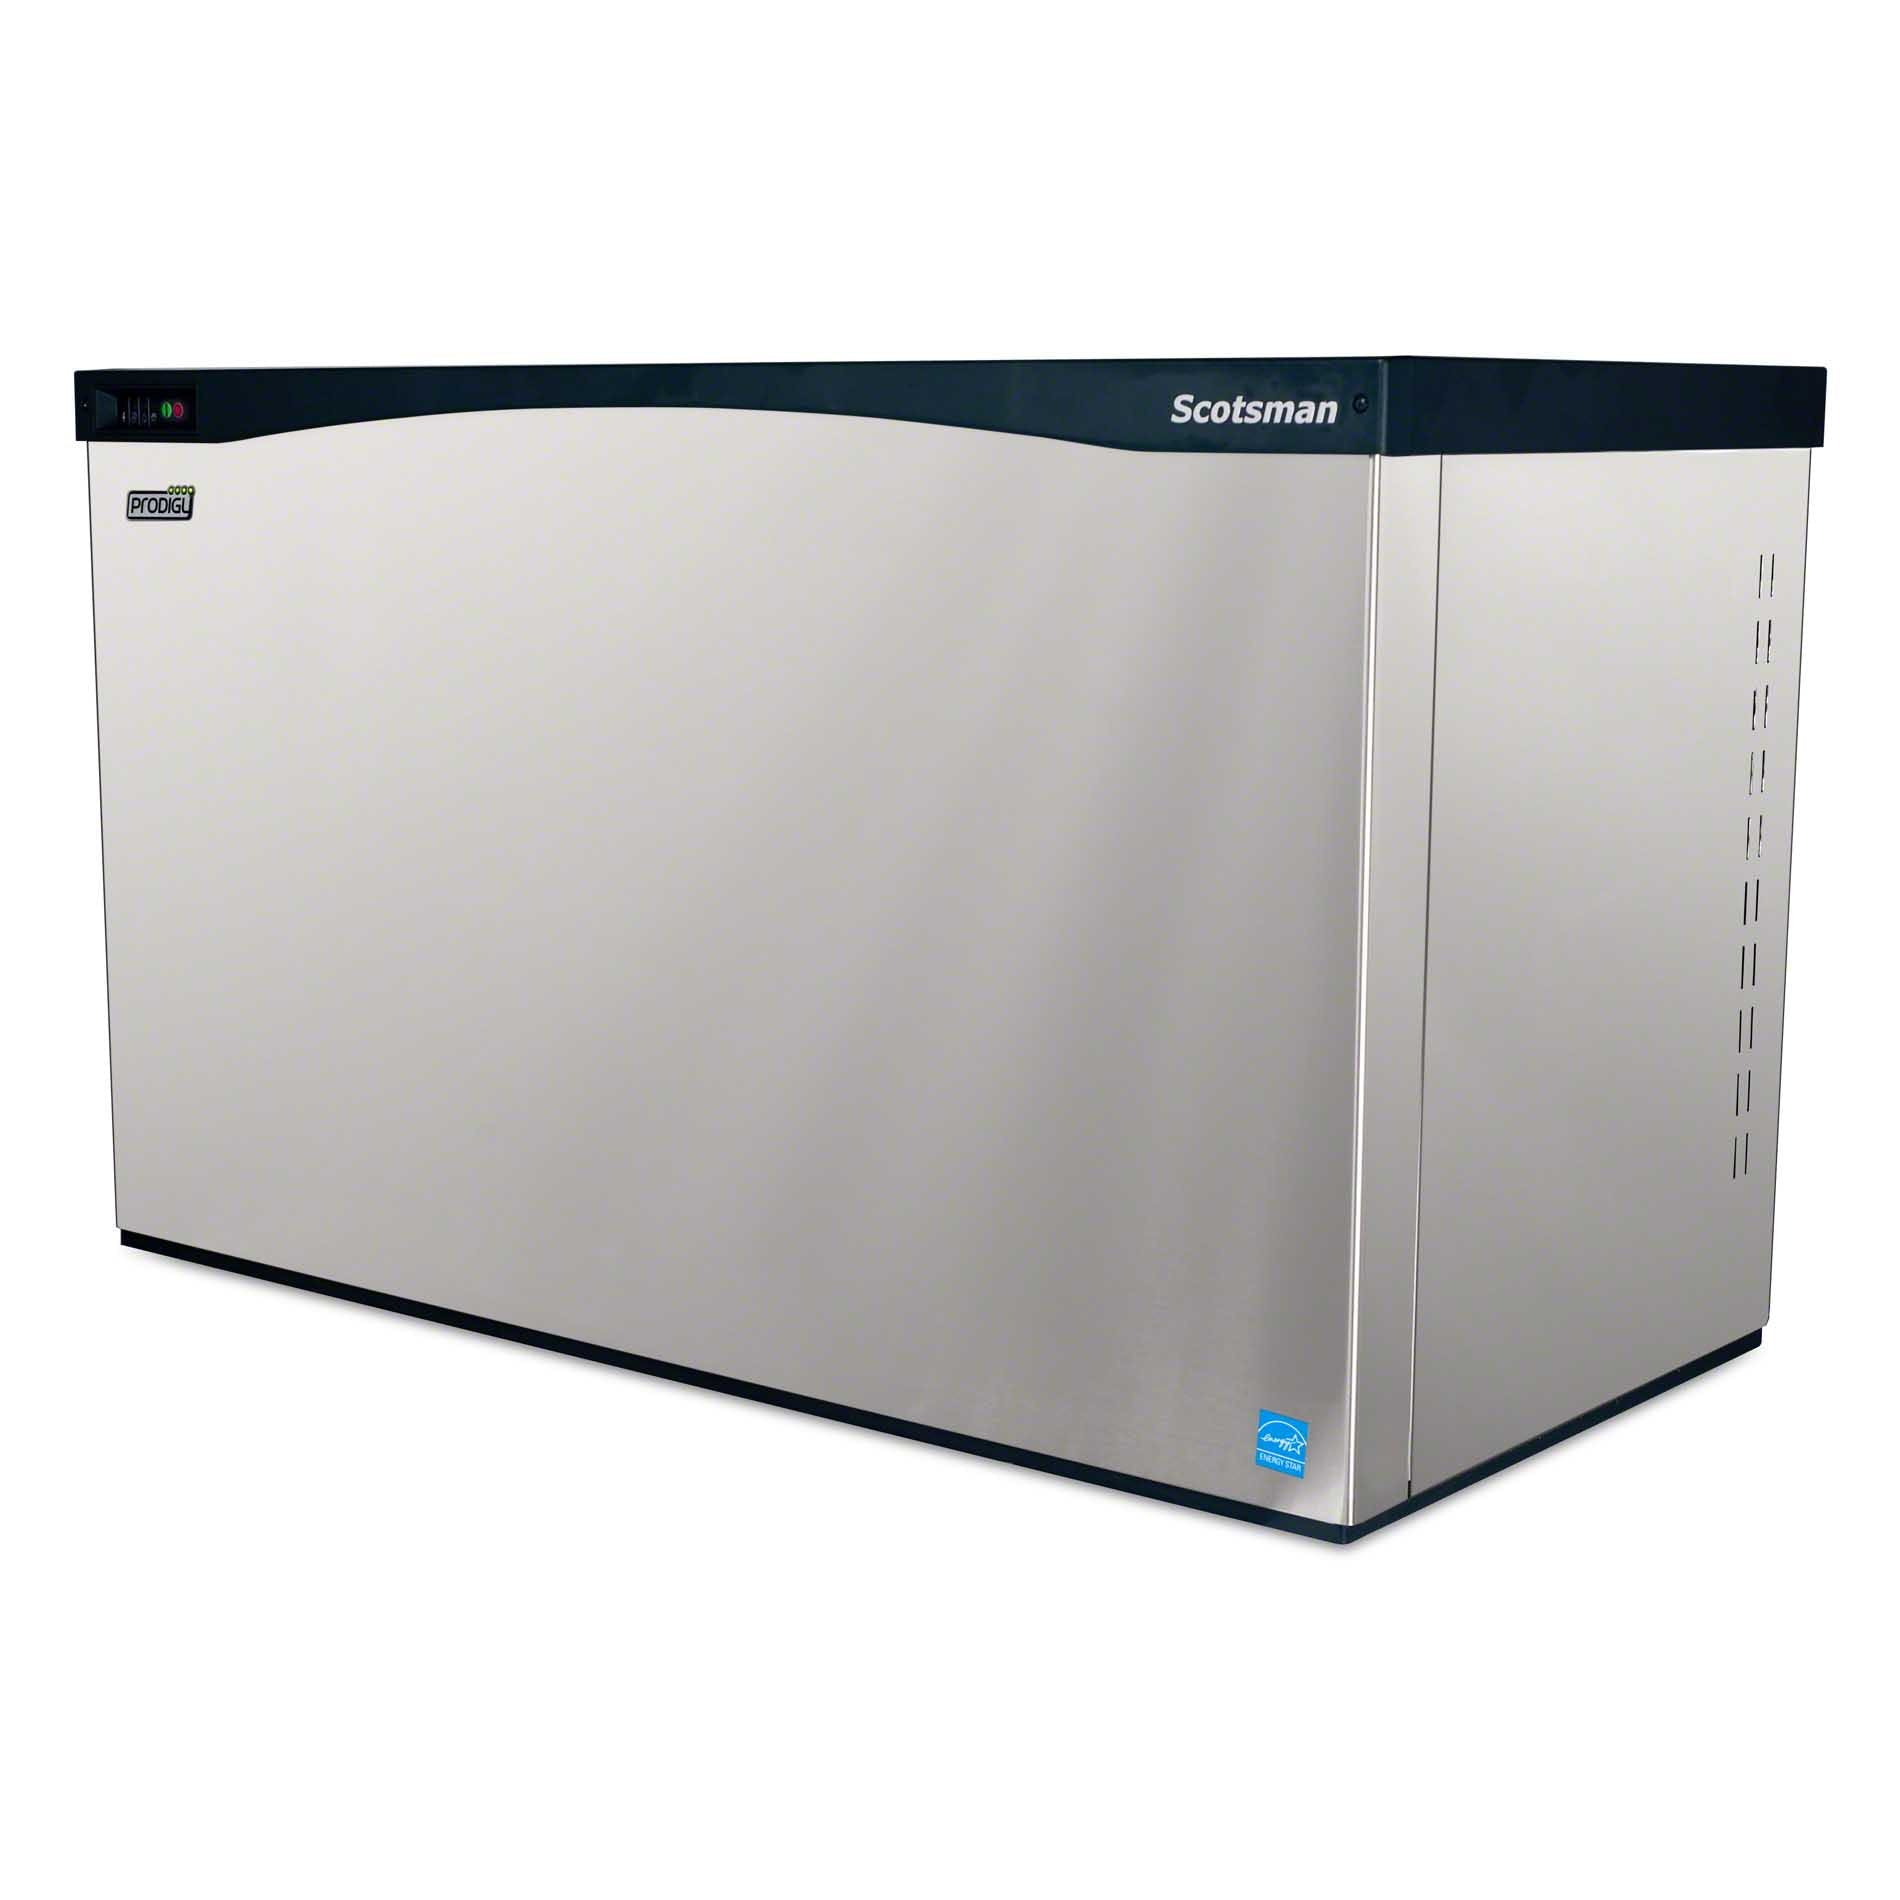 Scotsman - C1448SR-32A 1357 lb Half Size Cube Ice Machine - Prodigy Series - sold by Food Service Warehouse